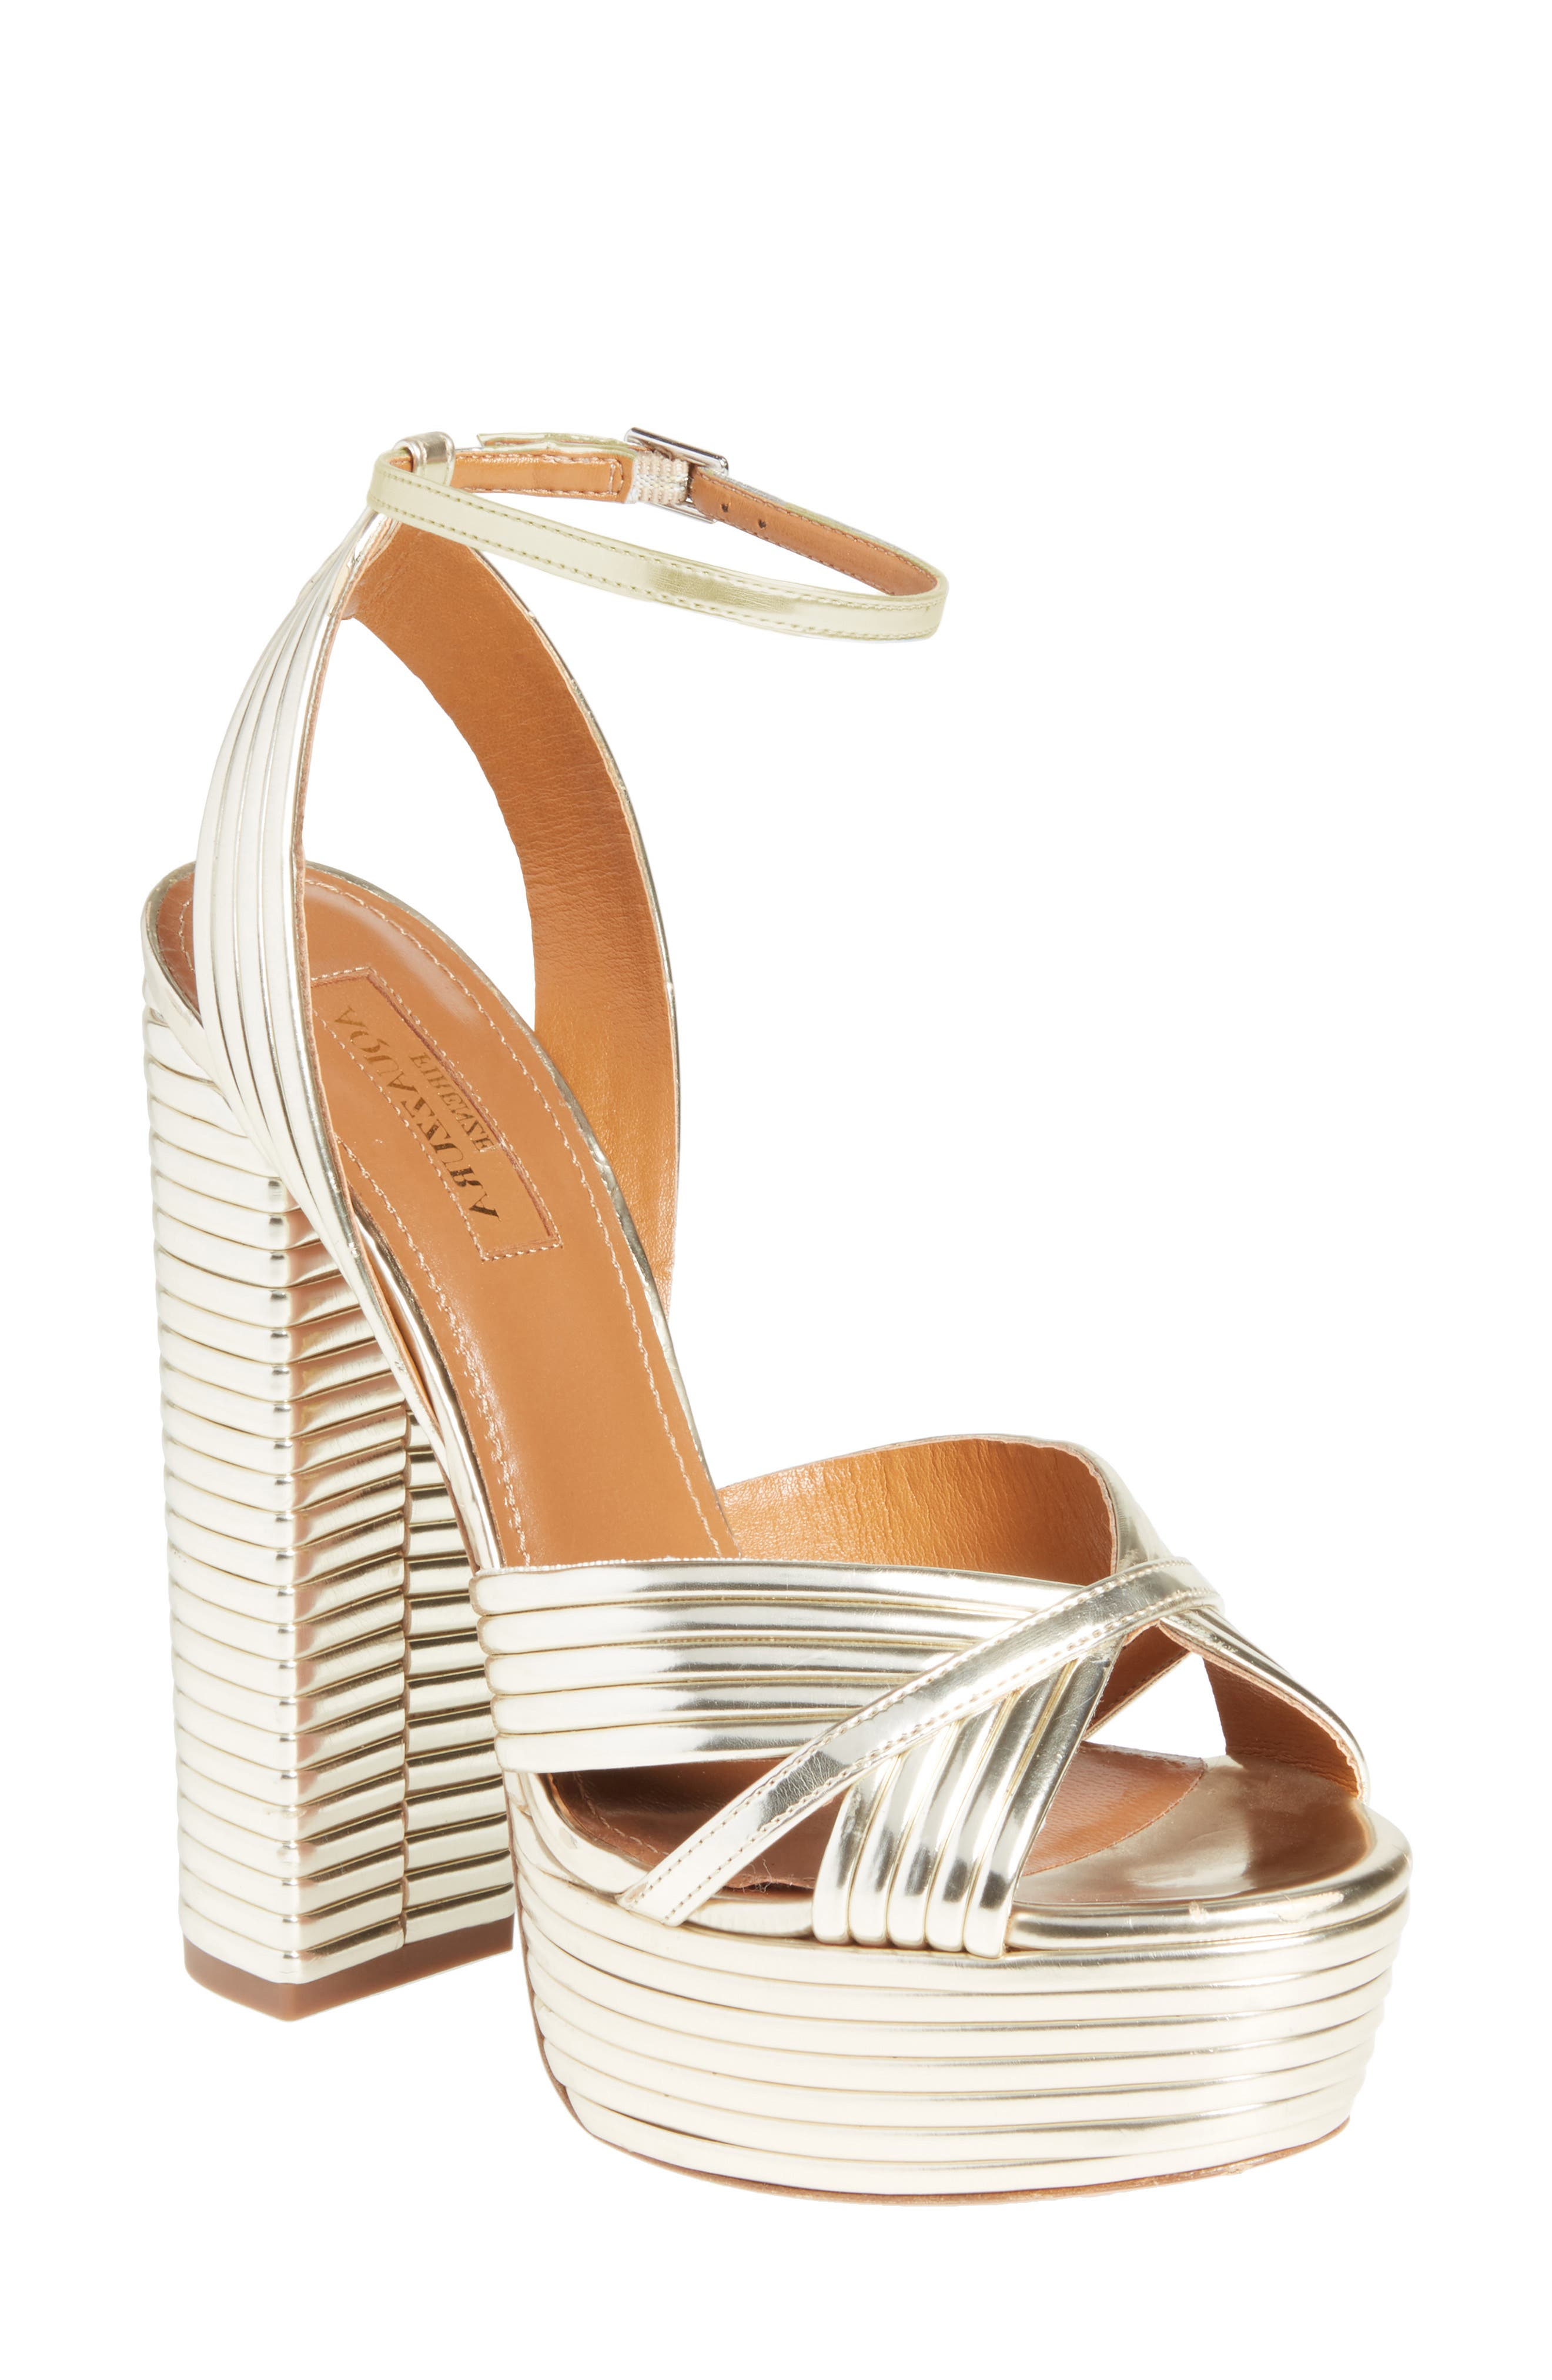 Sundance Platform Sandal,                             Main thumbnail 1, color,                             Light Gold